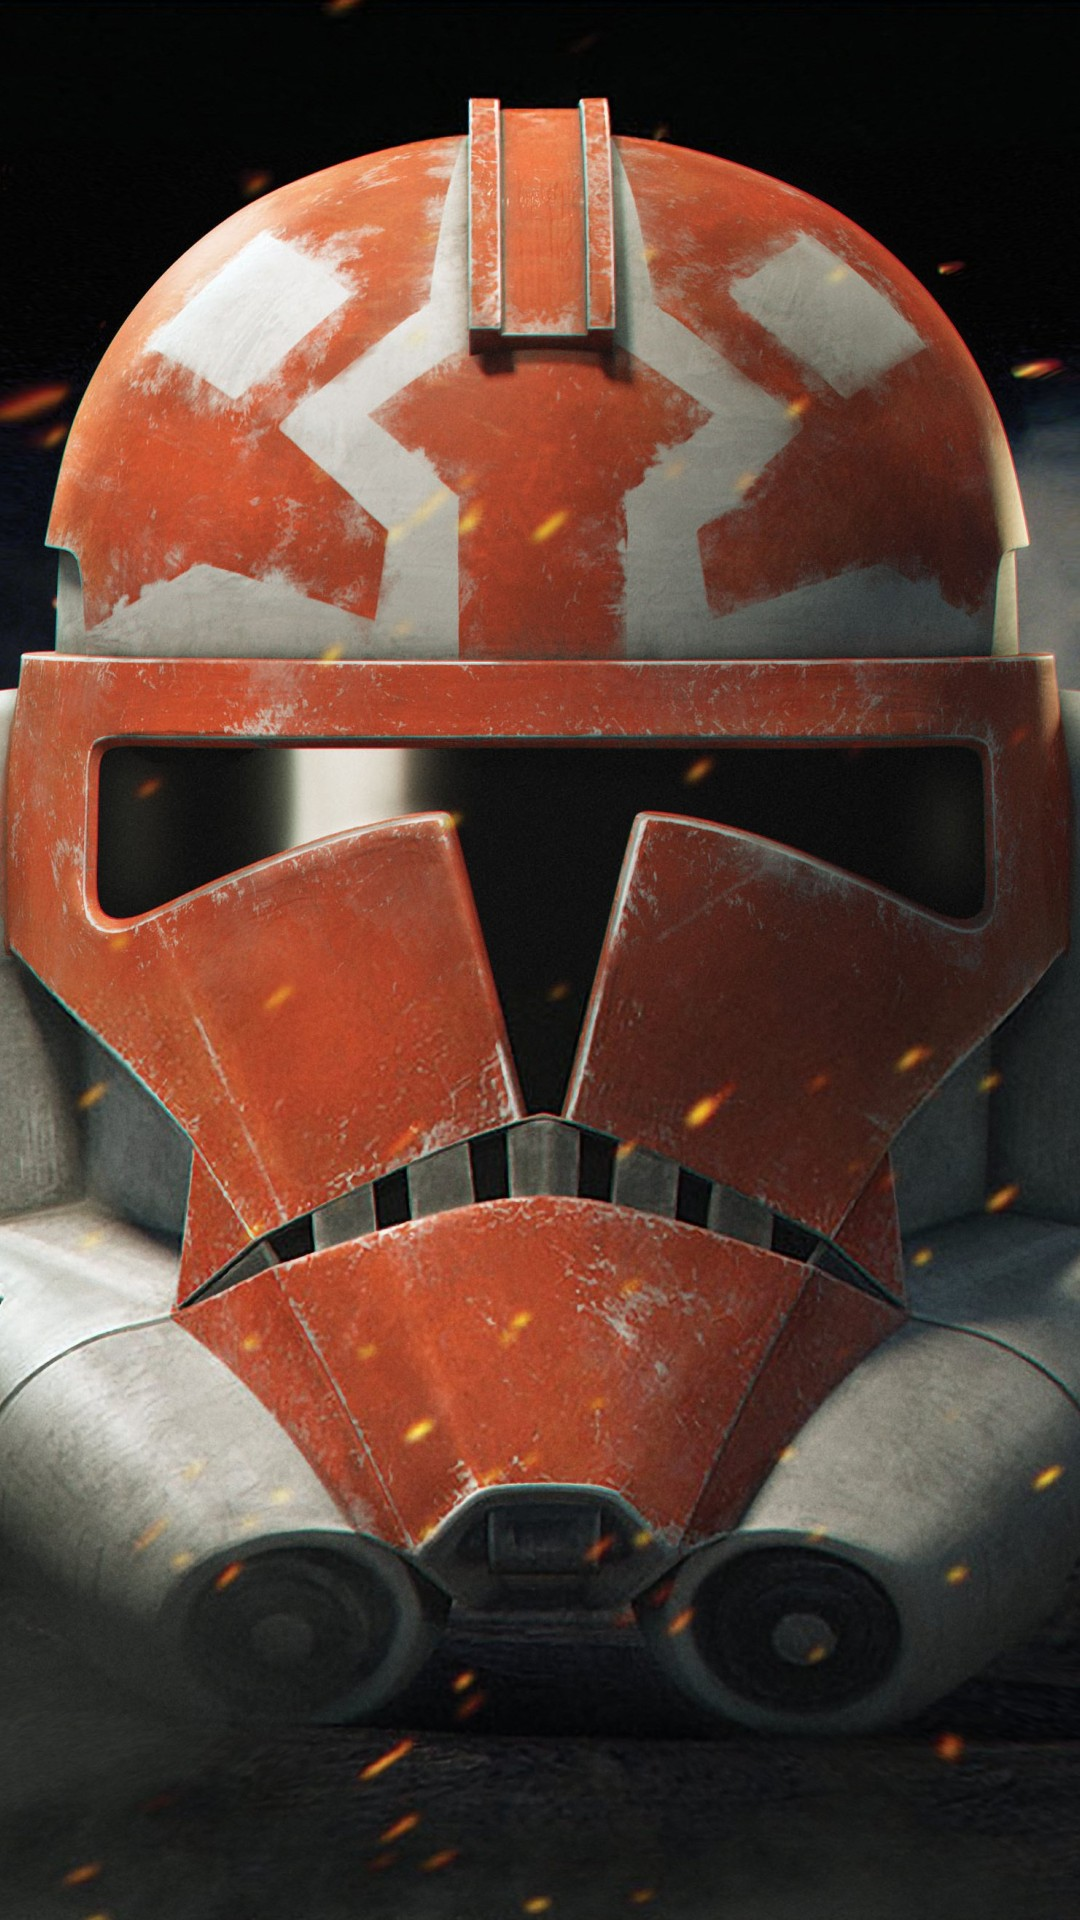 Star Wars The Clone Wars Season Clone Trooper Helmet 4k Wallpaper Iphone 6 Plus Wallpaper The Hot Desktop Wallpapers And Backgrounds For Your Pc And Mobile